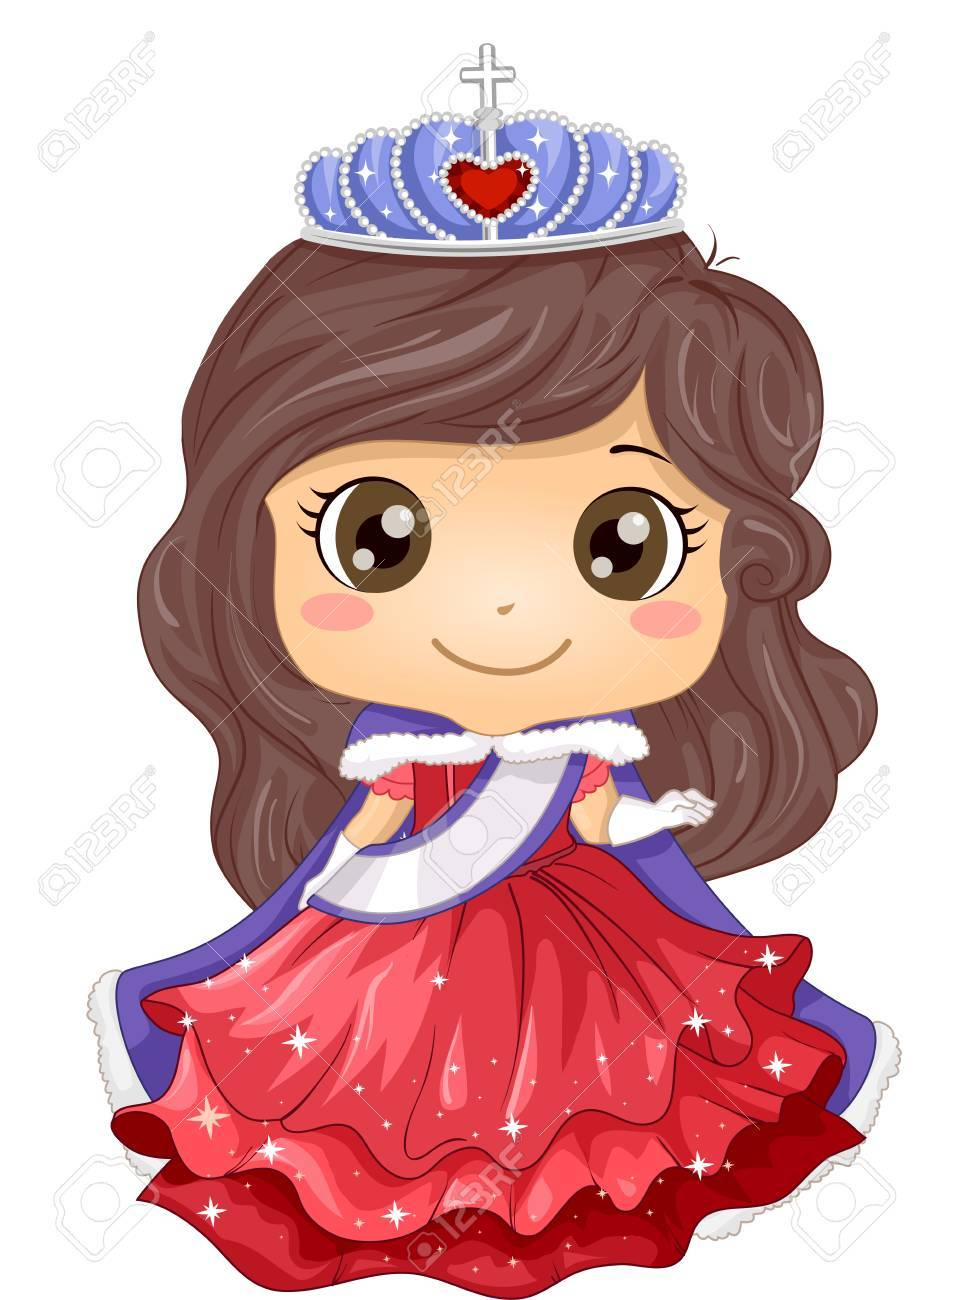 Illustration Of A Young Beauty Queen Wearing A Gown And A Tiara Stock Photo Picture And Royalty Free Image Image 64886380